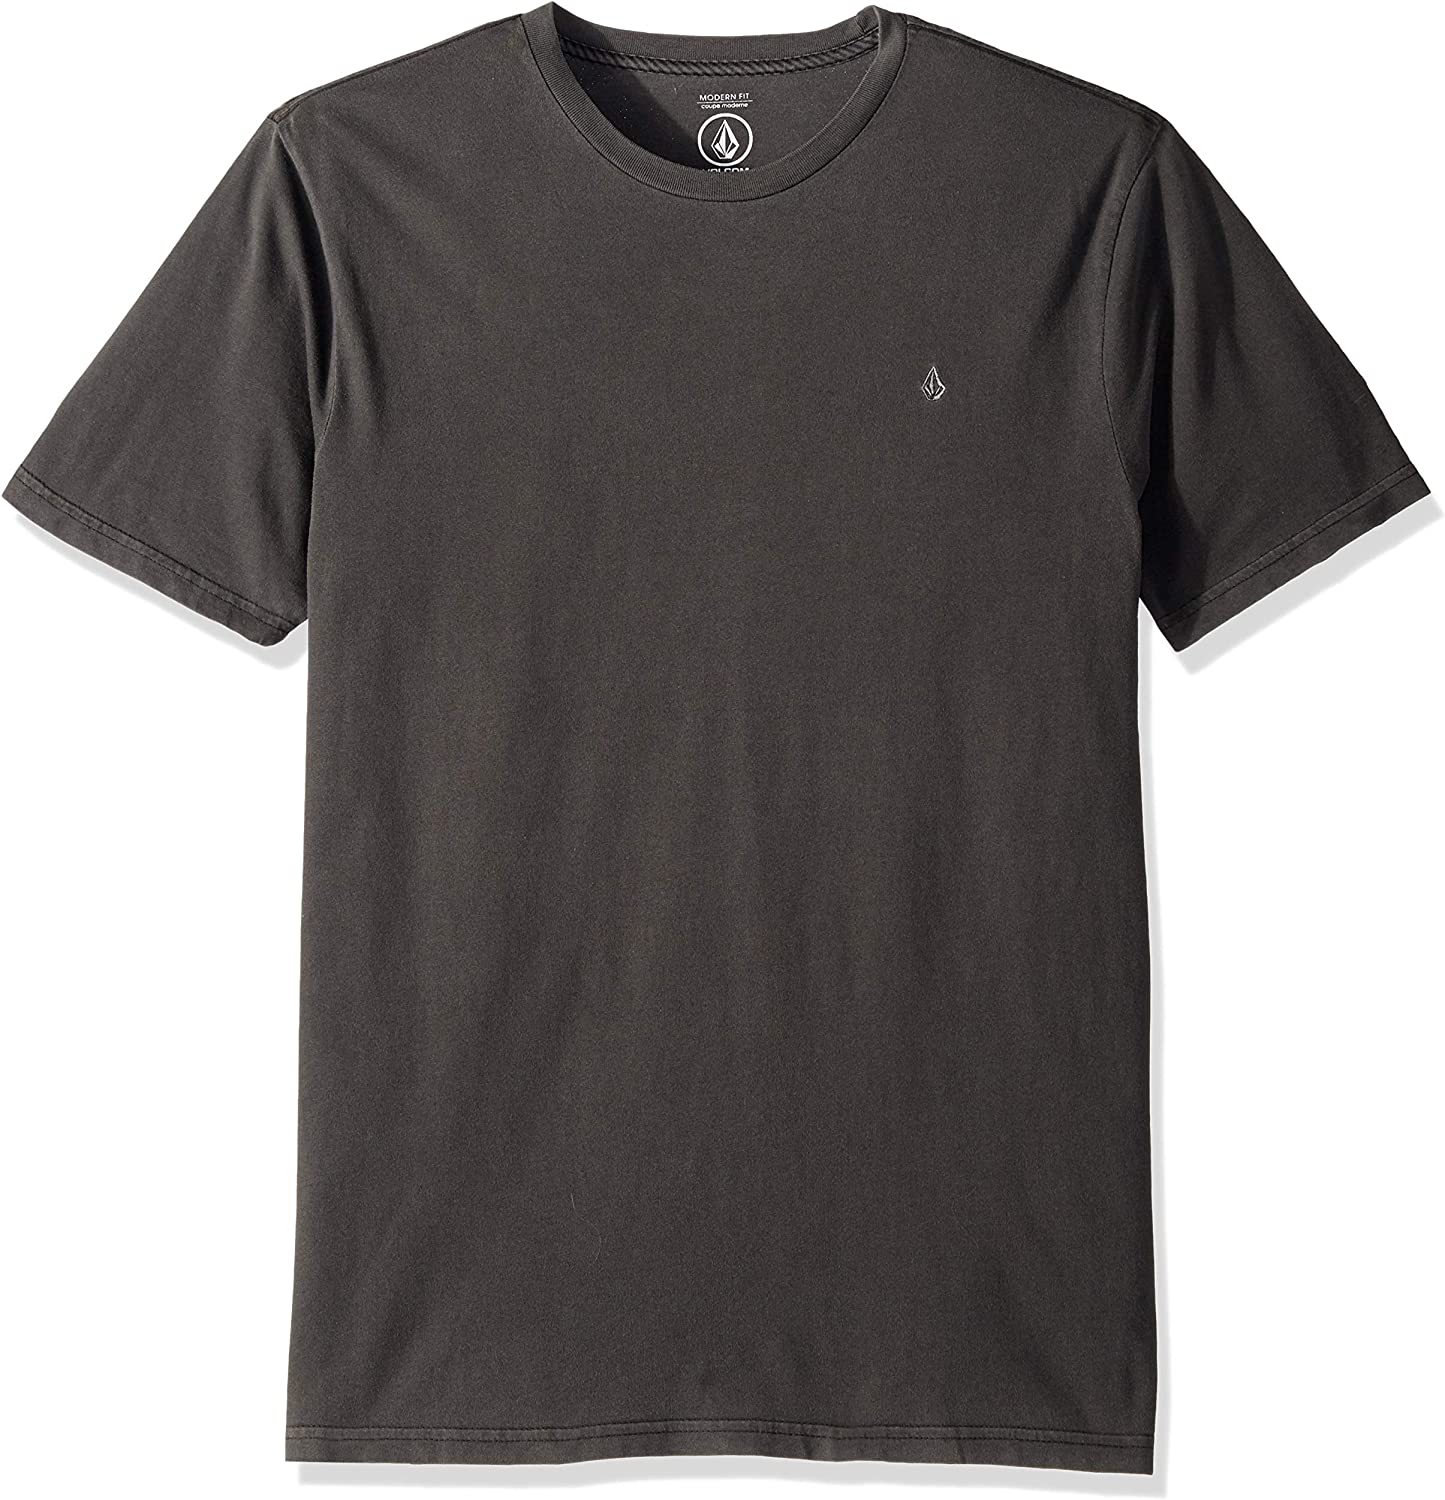 Volcom Men's Solid Stone Embroidered Short Sleeve Tee 新色 実物